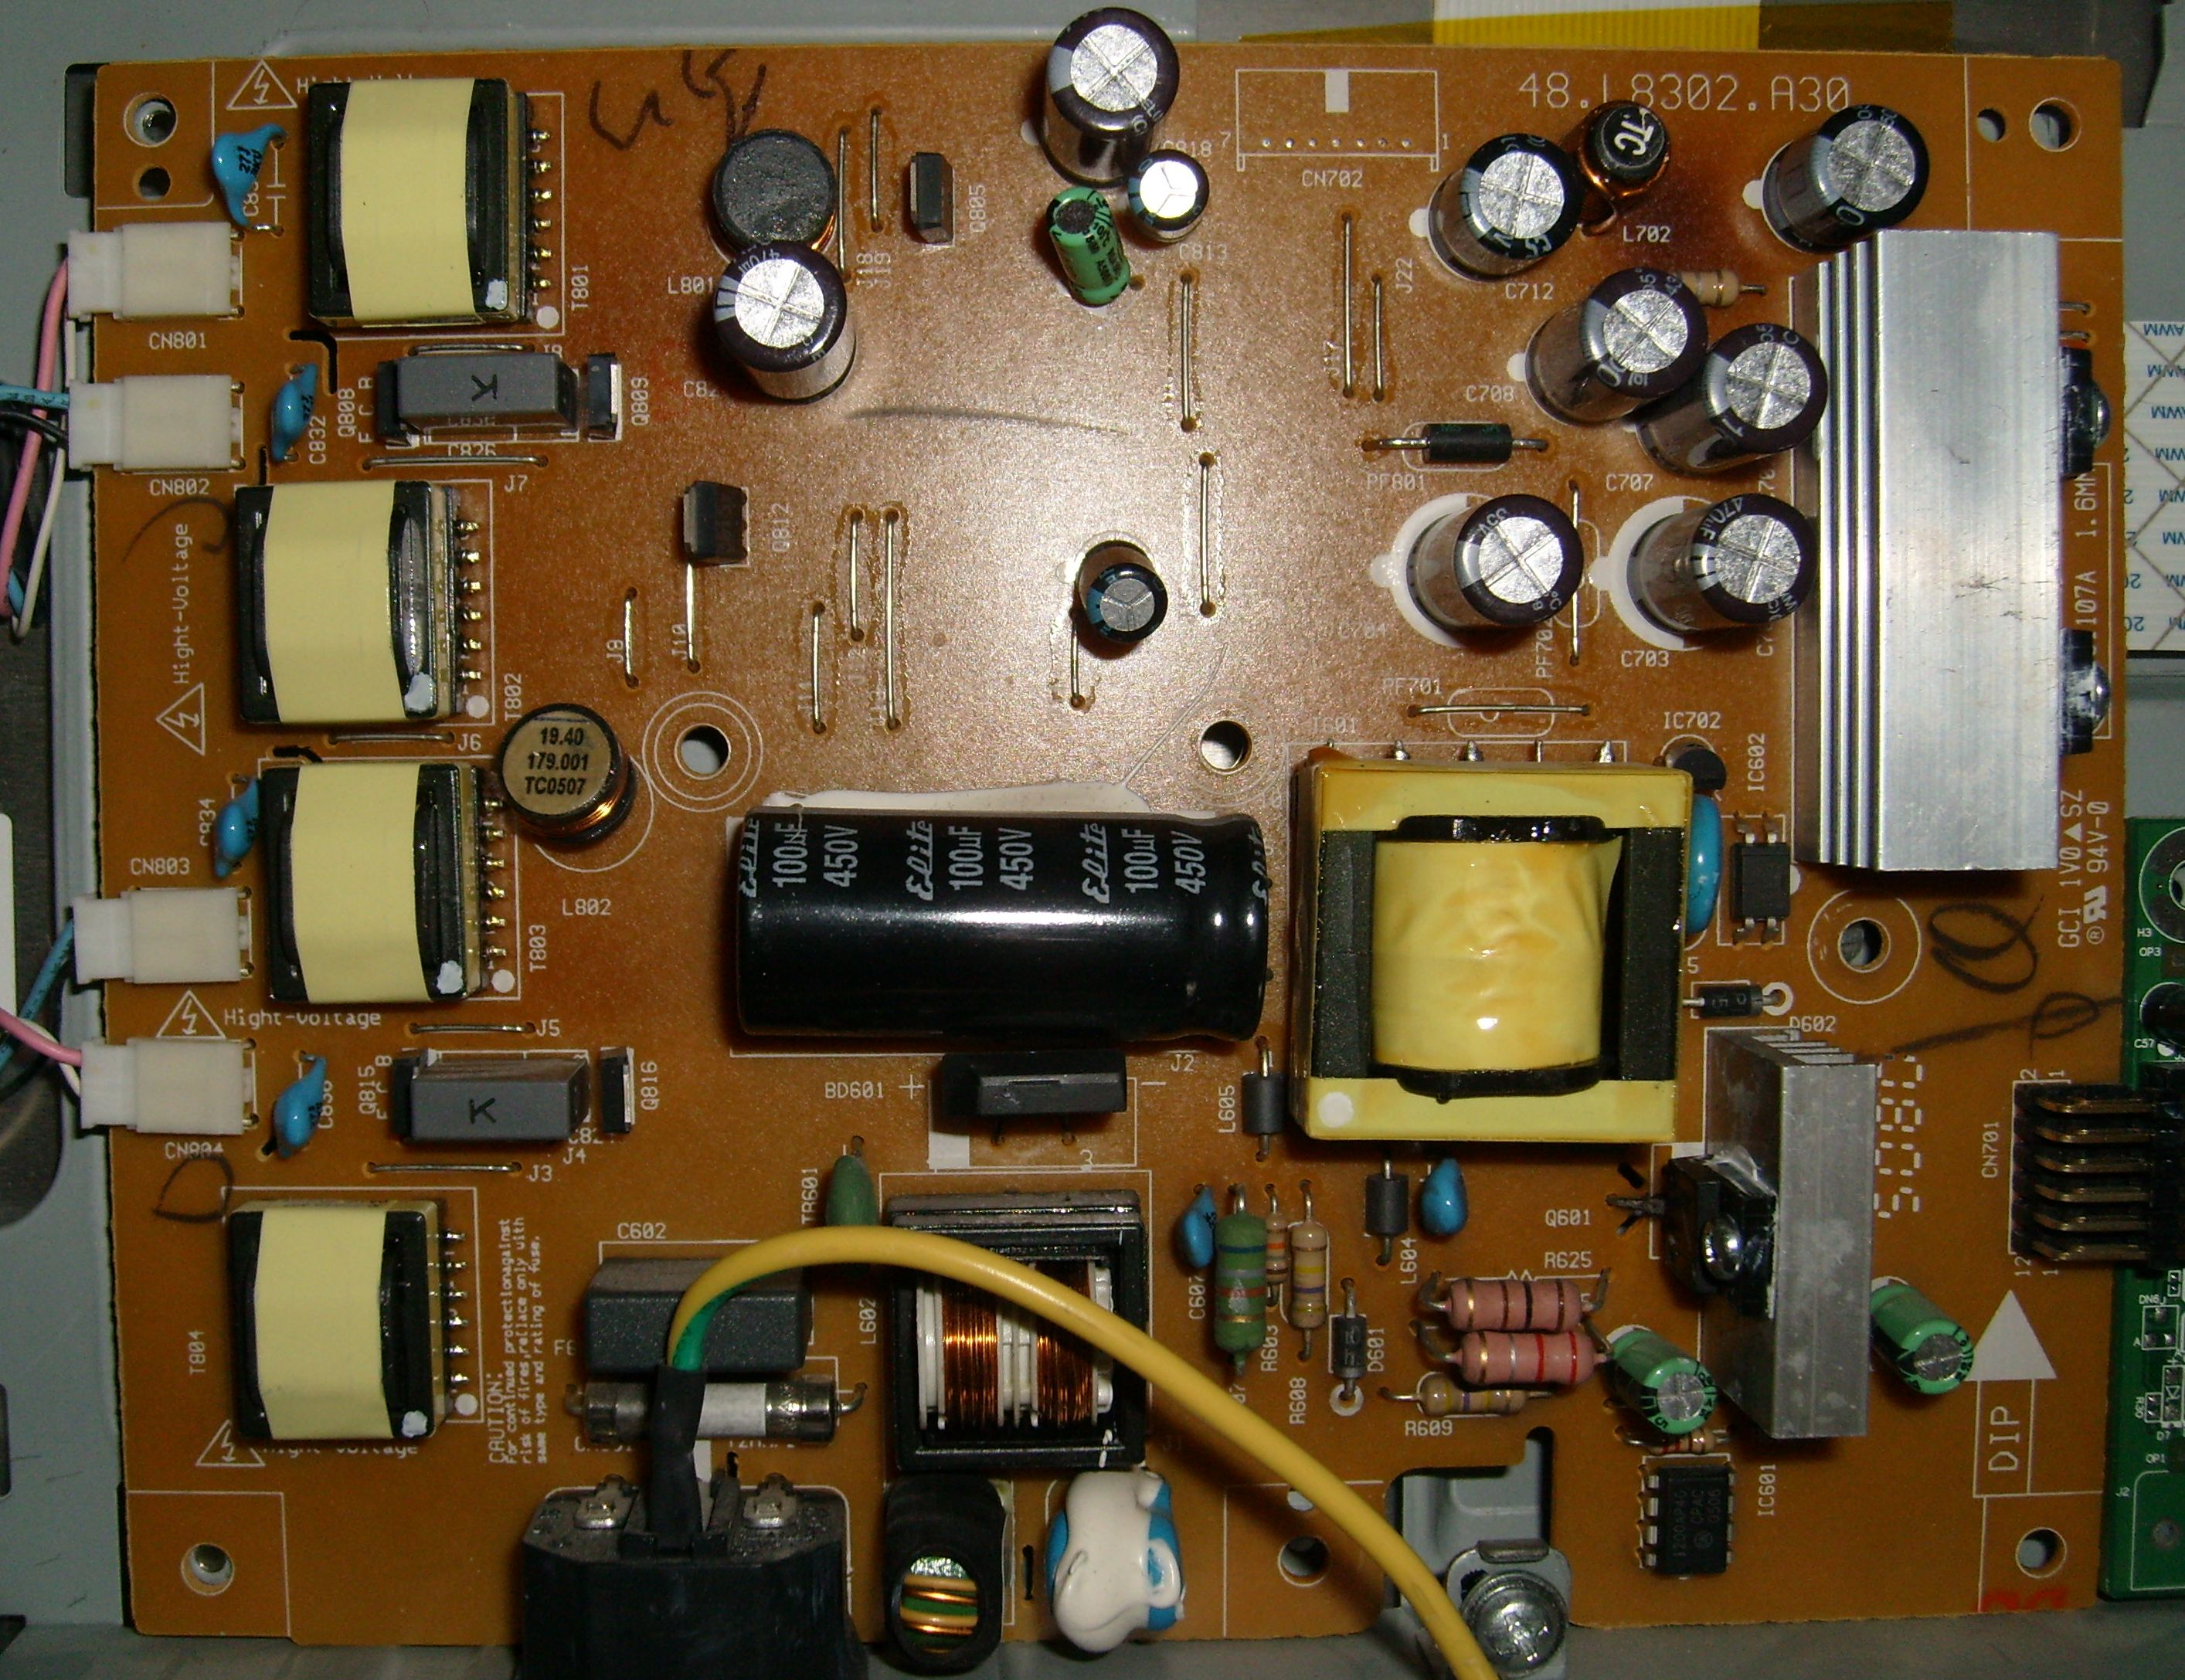 Power Whats This White Stuff On My Board Electrical Engineering Objectives Of Circuit Printing The Primary Objective 3 Answers